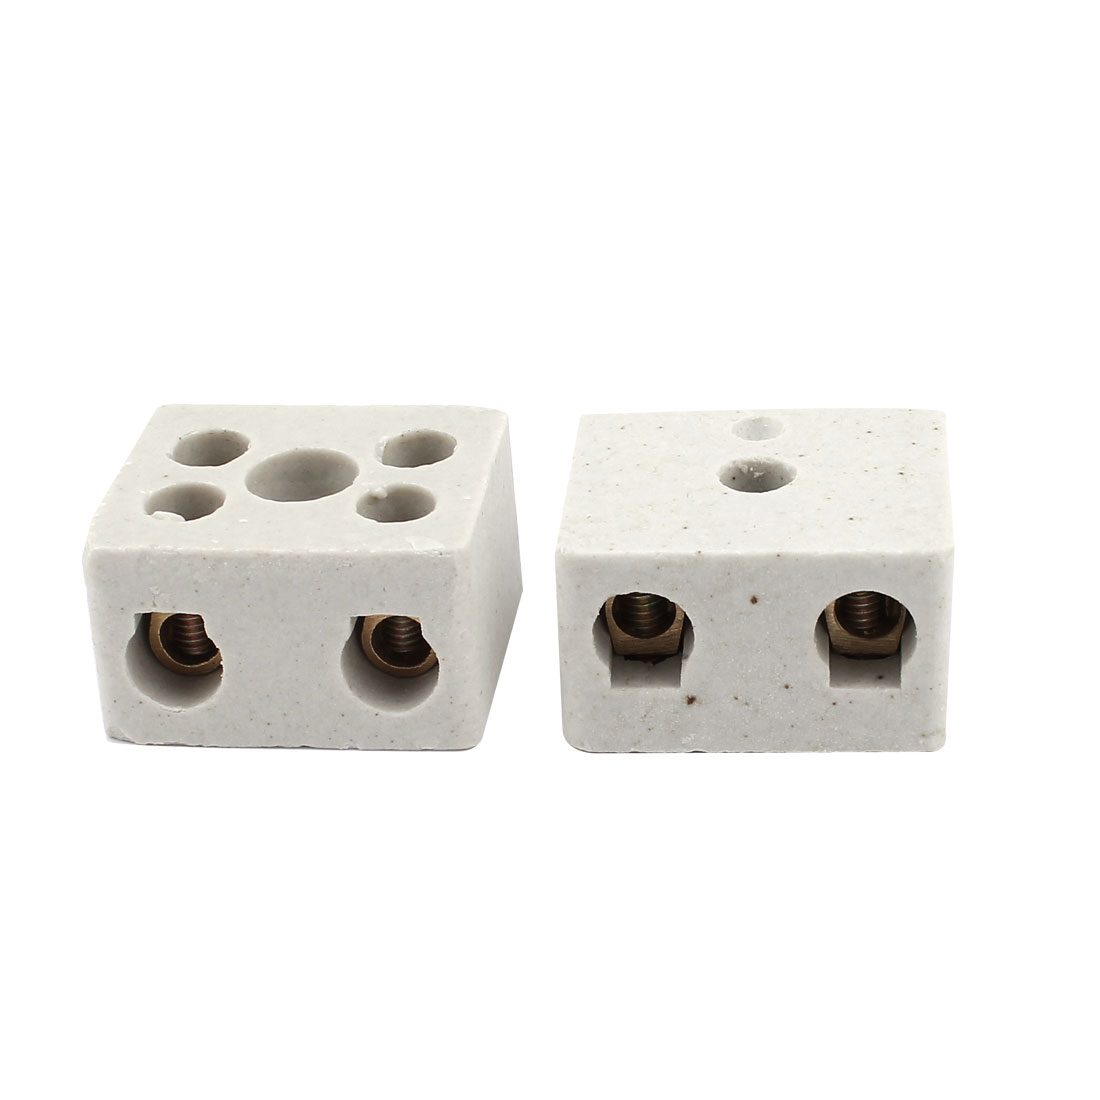 2 Pcs White Ceramic Cover Dual Rows Single Phase Barrier Terminal Block